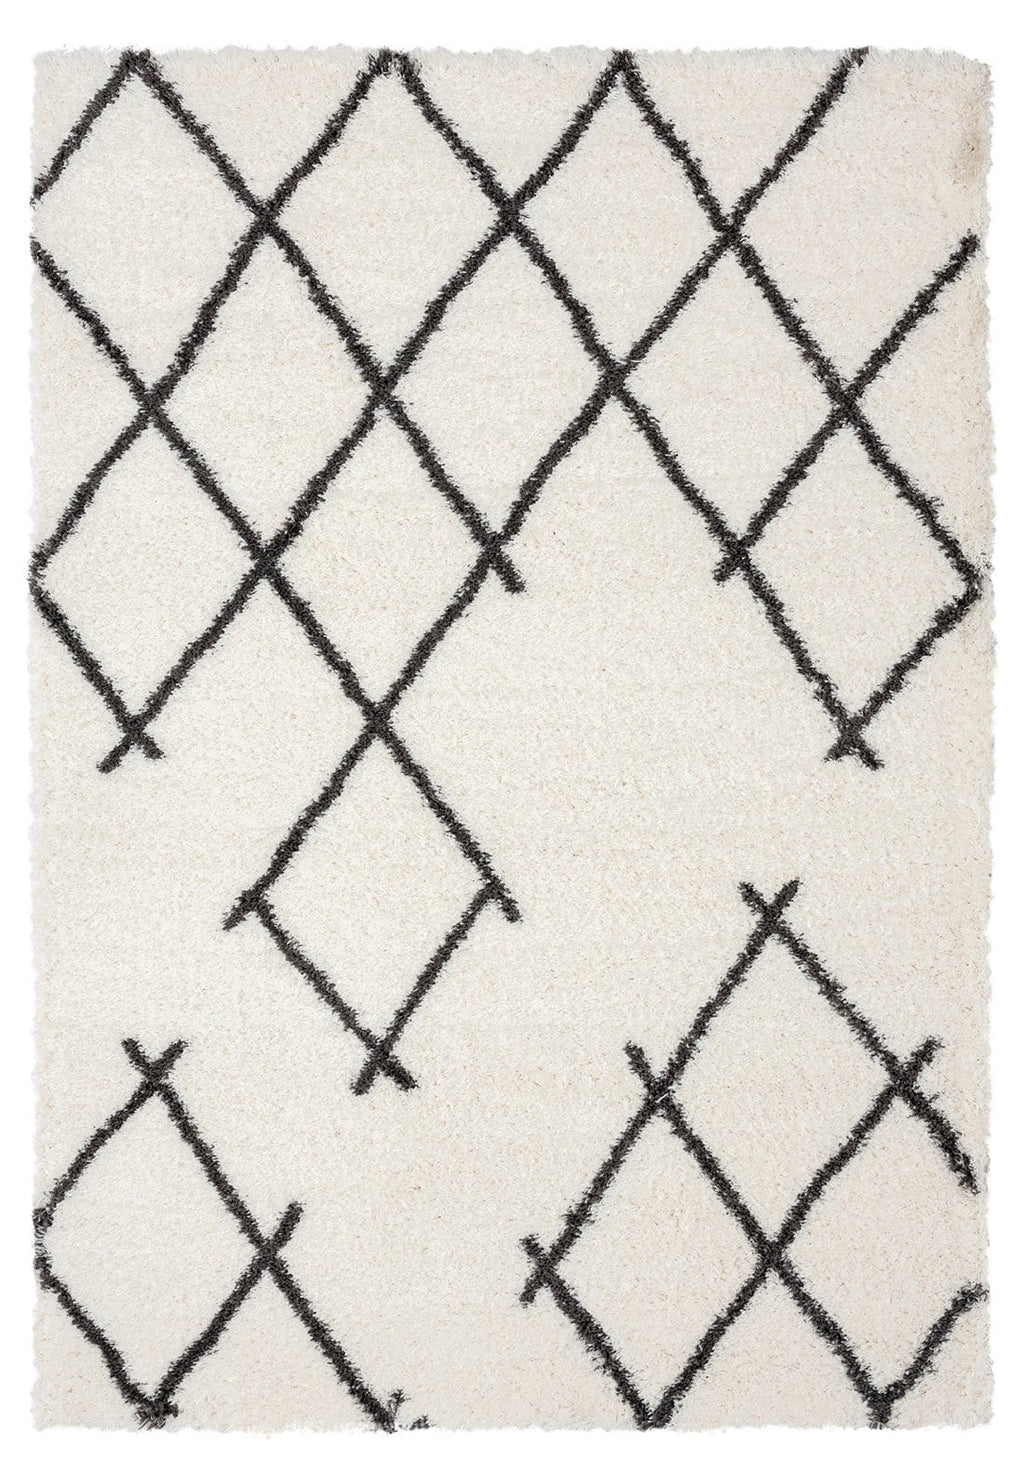 Tuva Ivory and Charcoal Grey Tribal Shag Rug